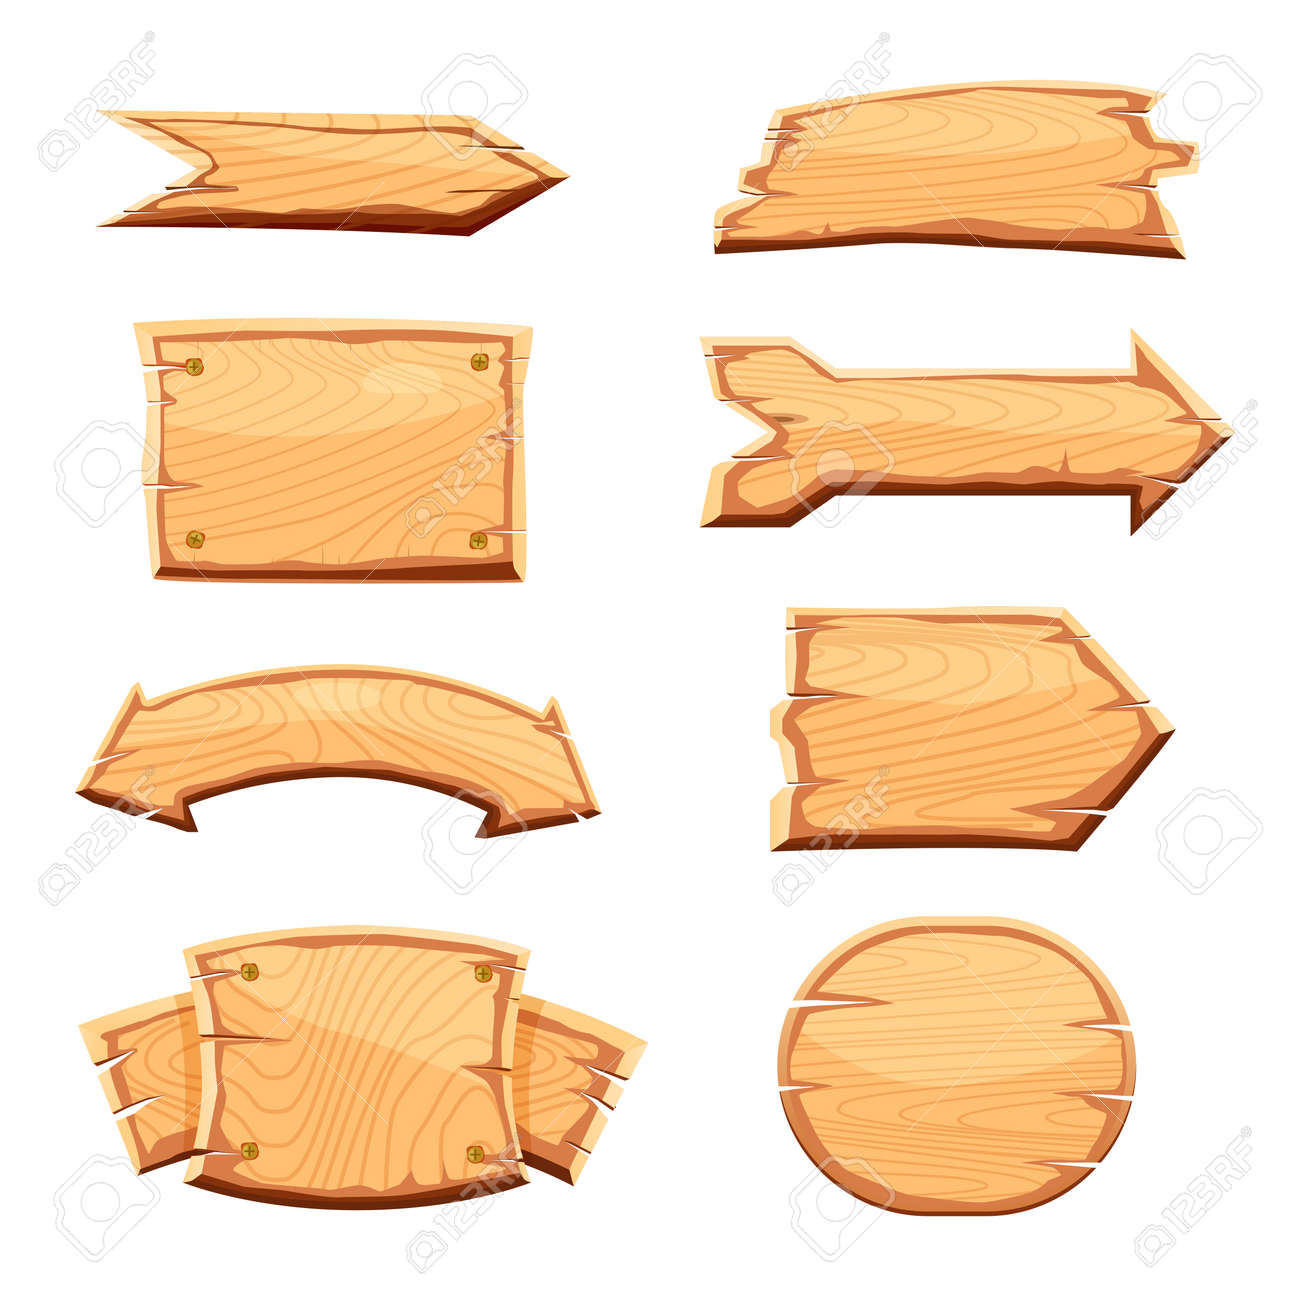 Wooden label set isolated on white background vector illustration. Various shapes wooden sign board for sale, price, discount sticker, banner, badge. Cartoon wooden pointer retro style collection - 69365210